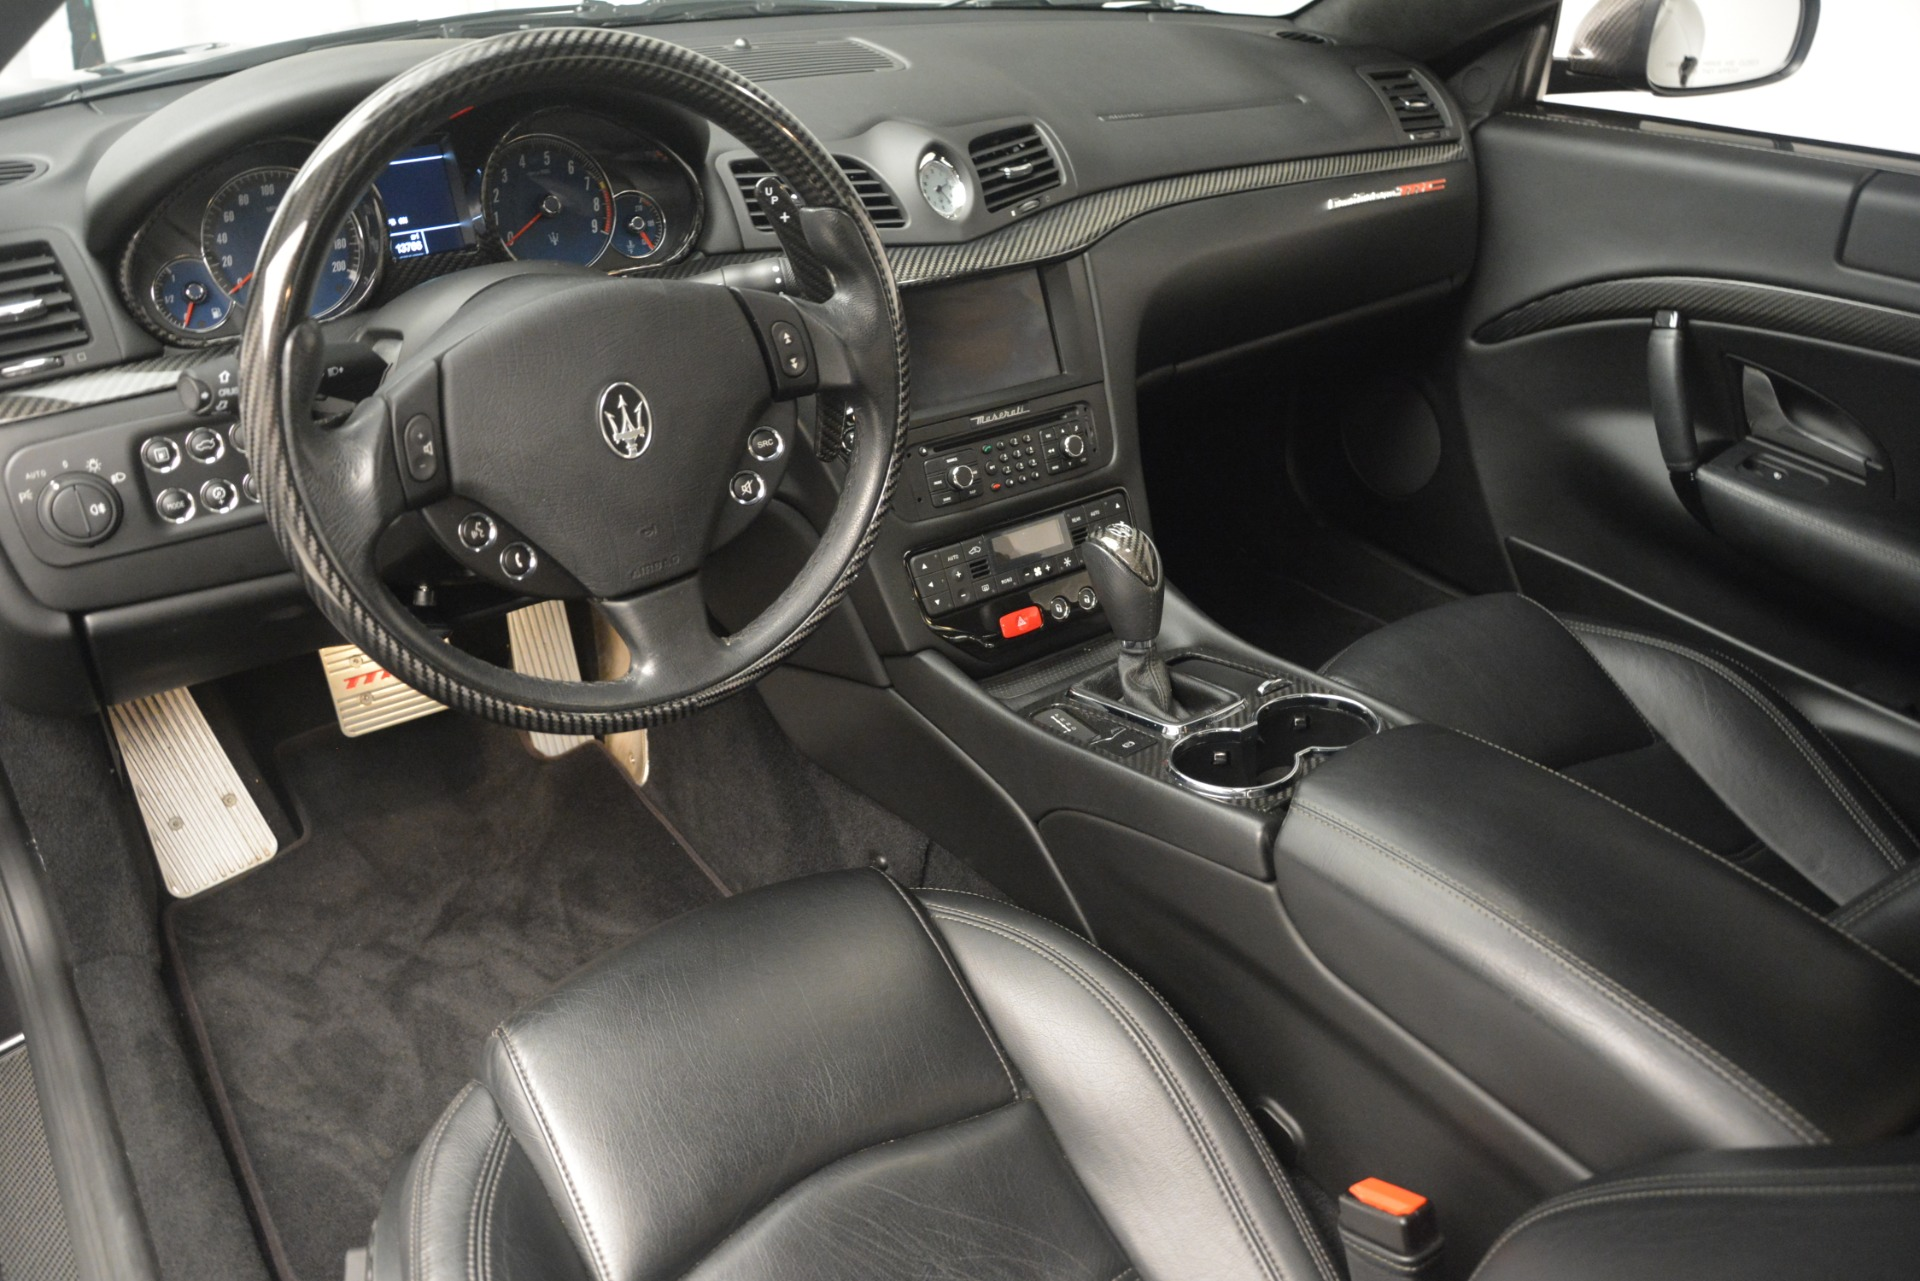 Used 2012 Maserati GranTurismo MC For Sale In Greenwich, CT 1284_p13